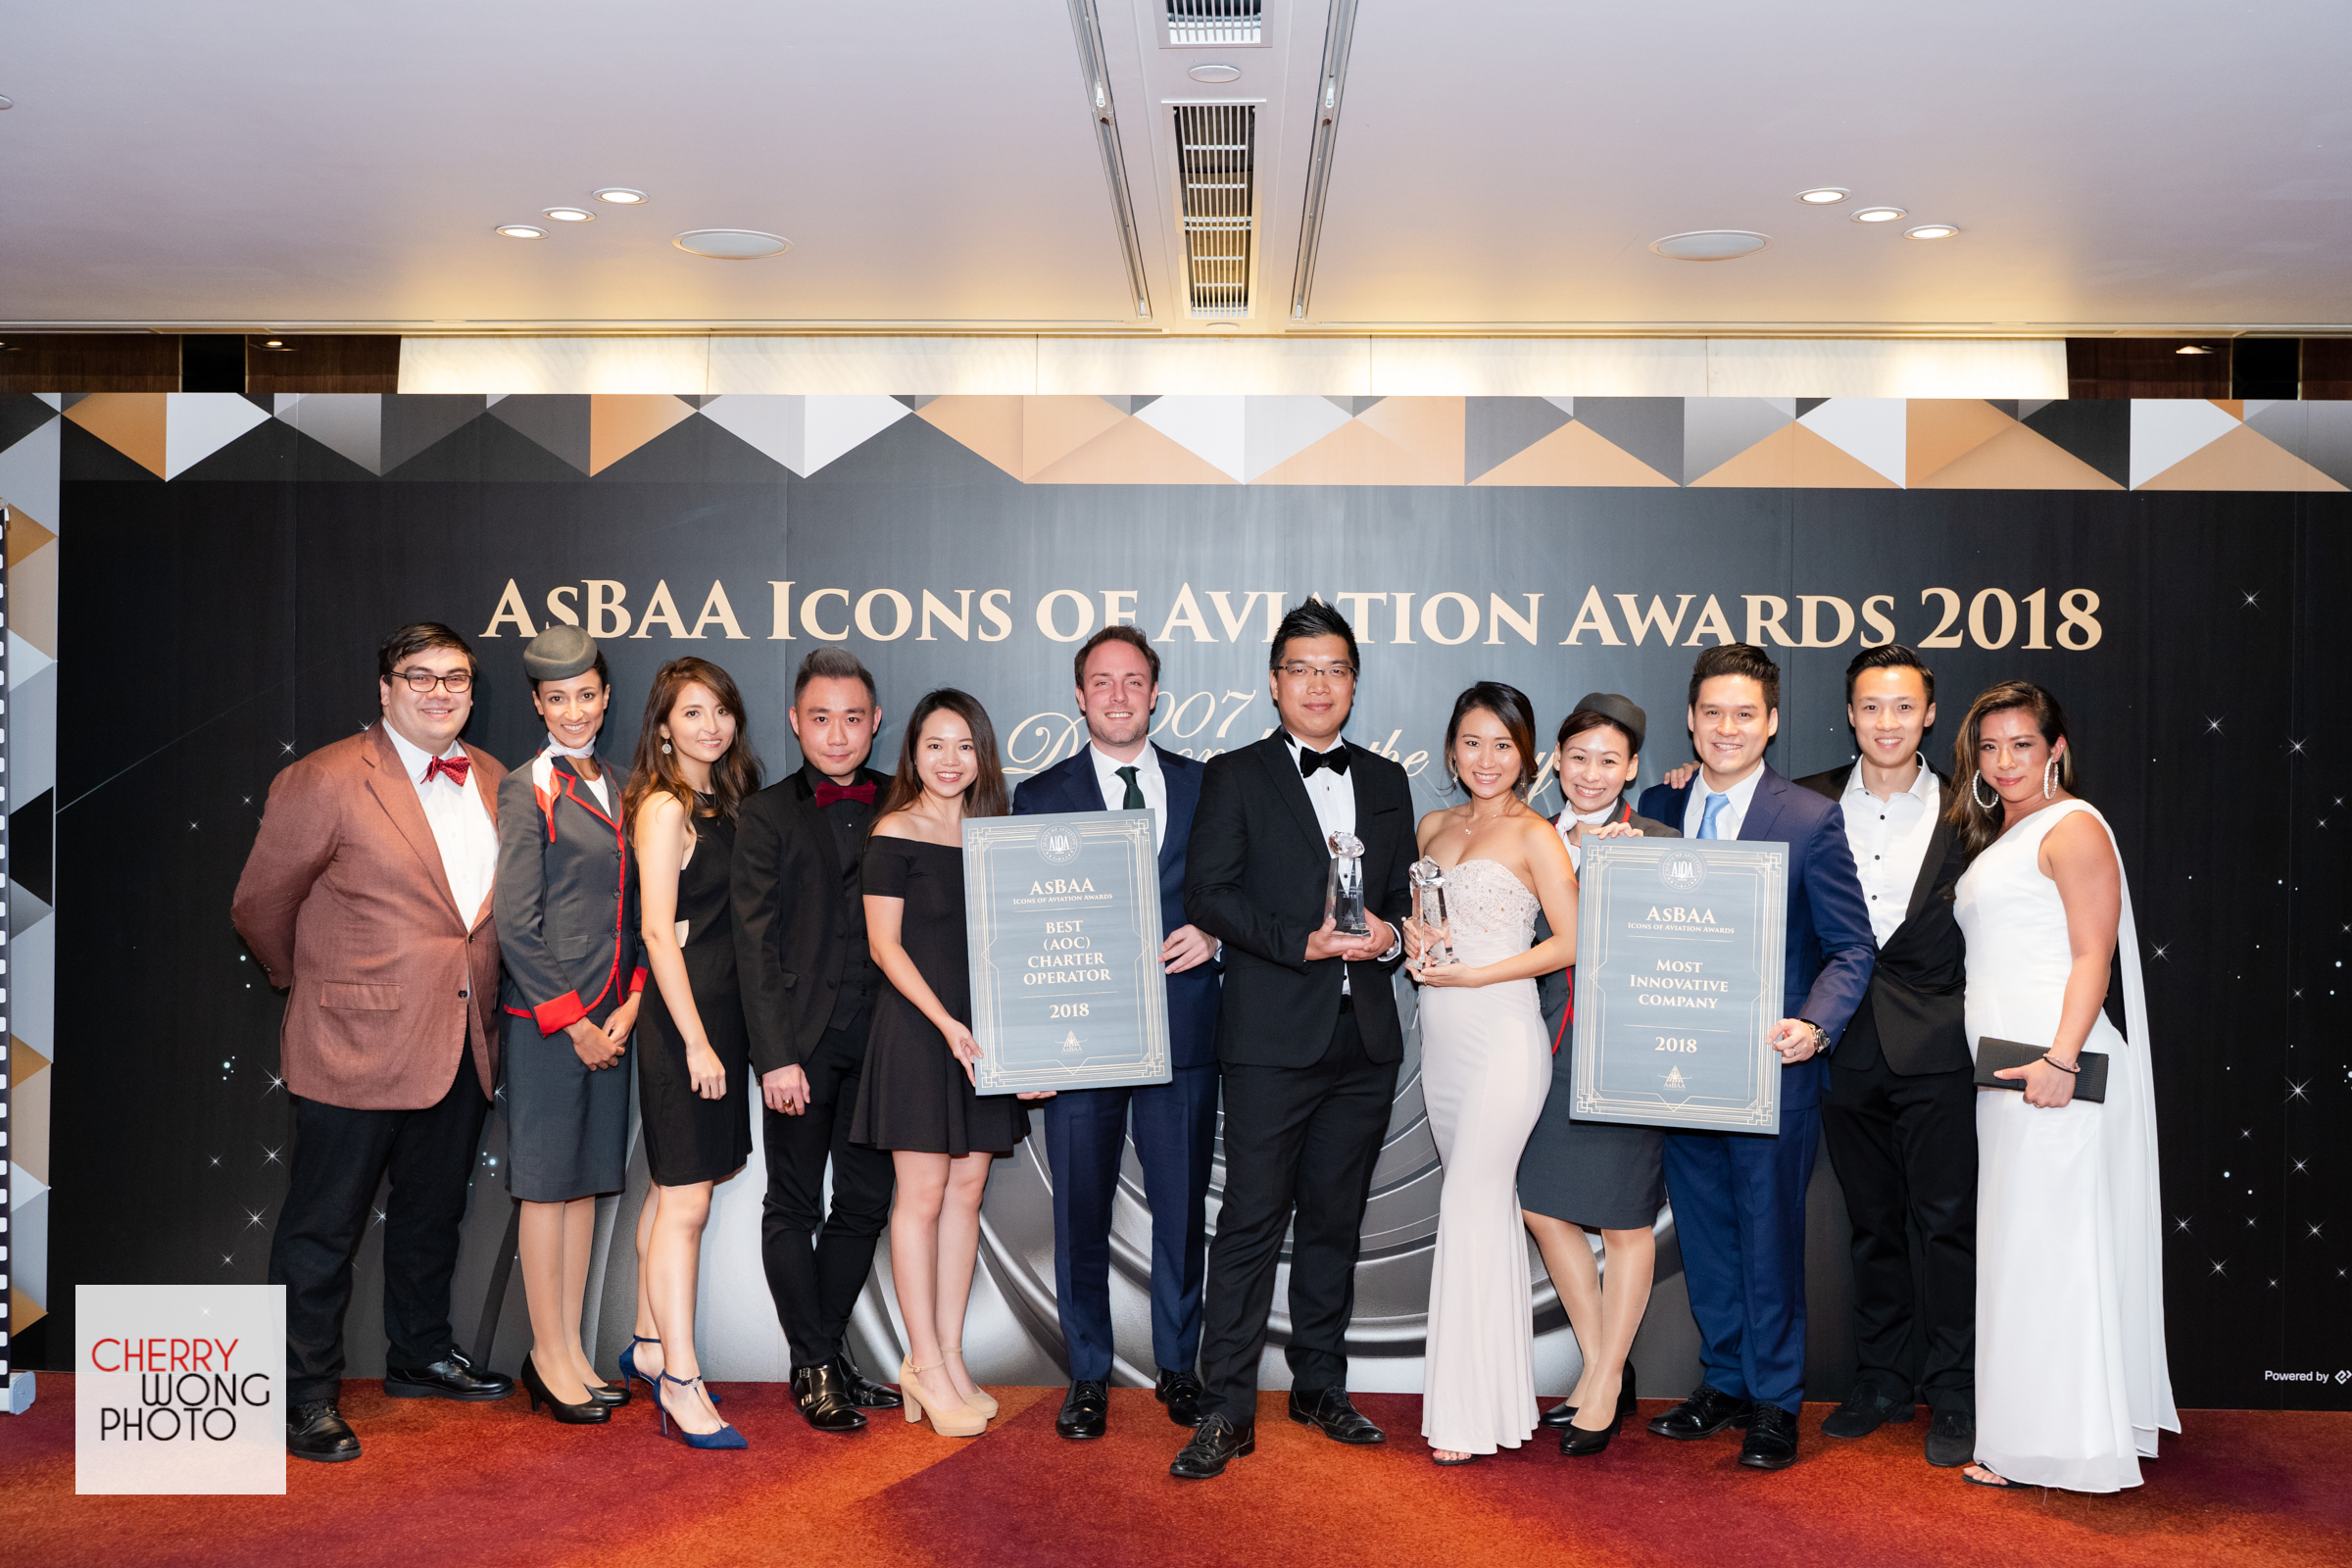 vistajet-receives-two-asbaa-icons-of-aviation-awards